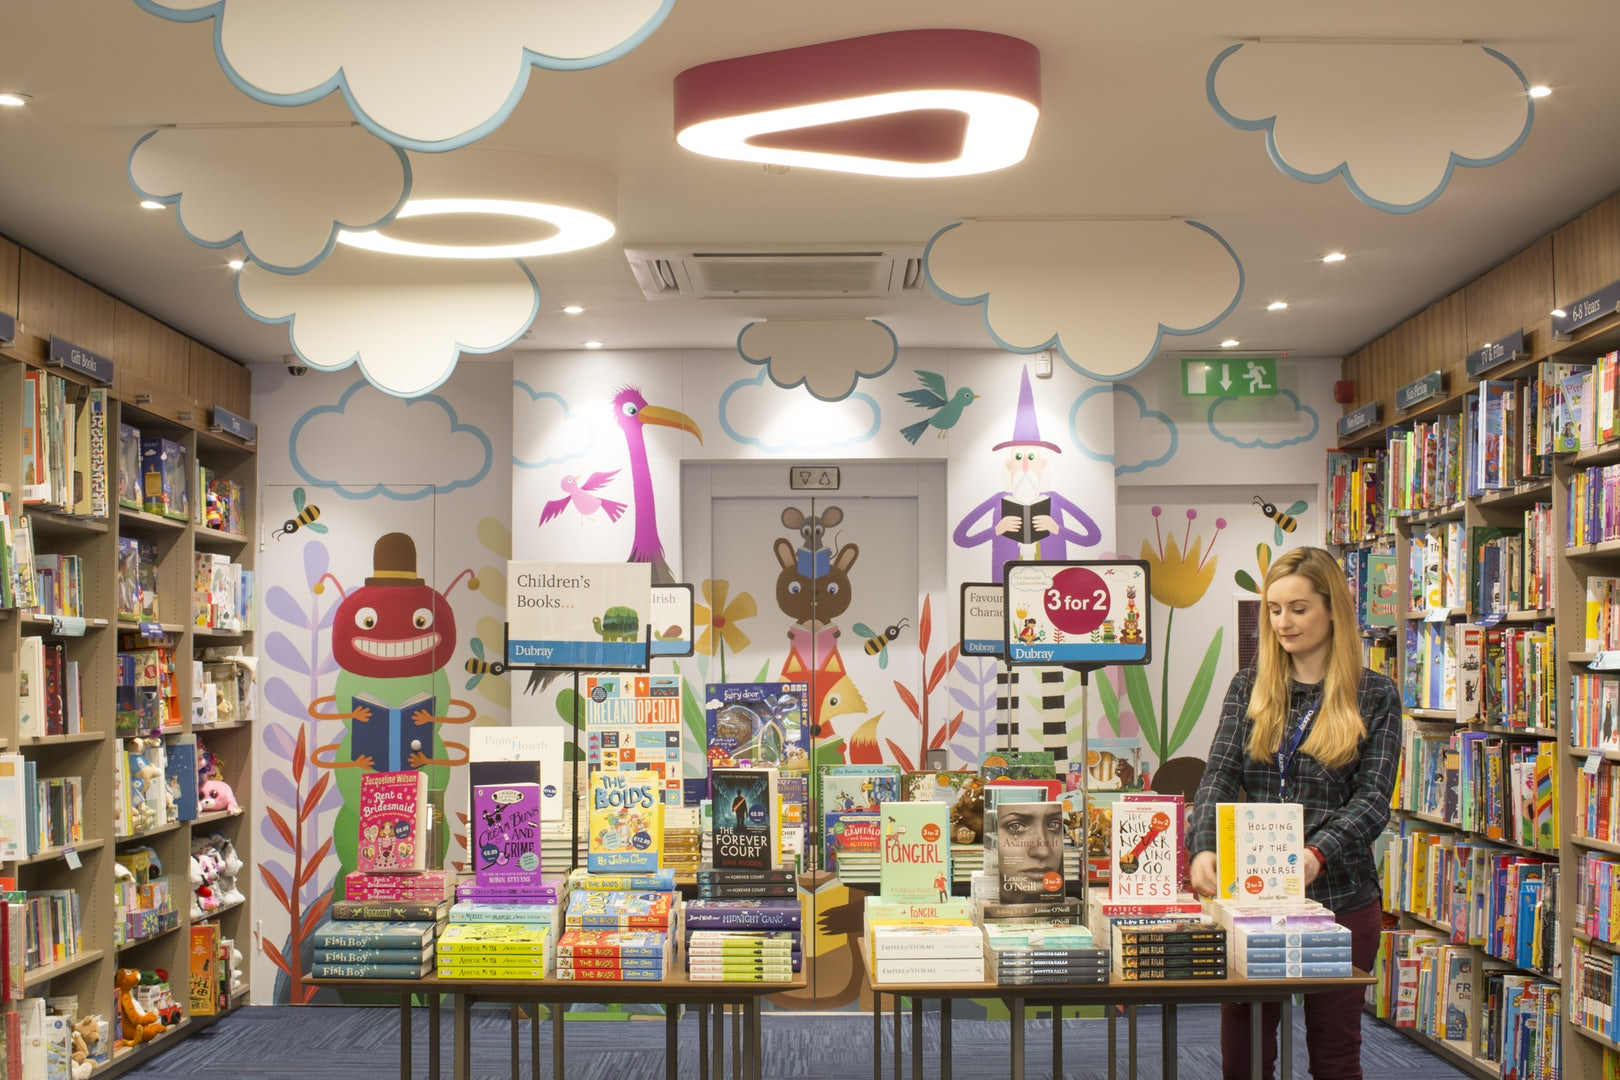 Children's book at Dubray store in Dublin